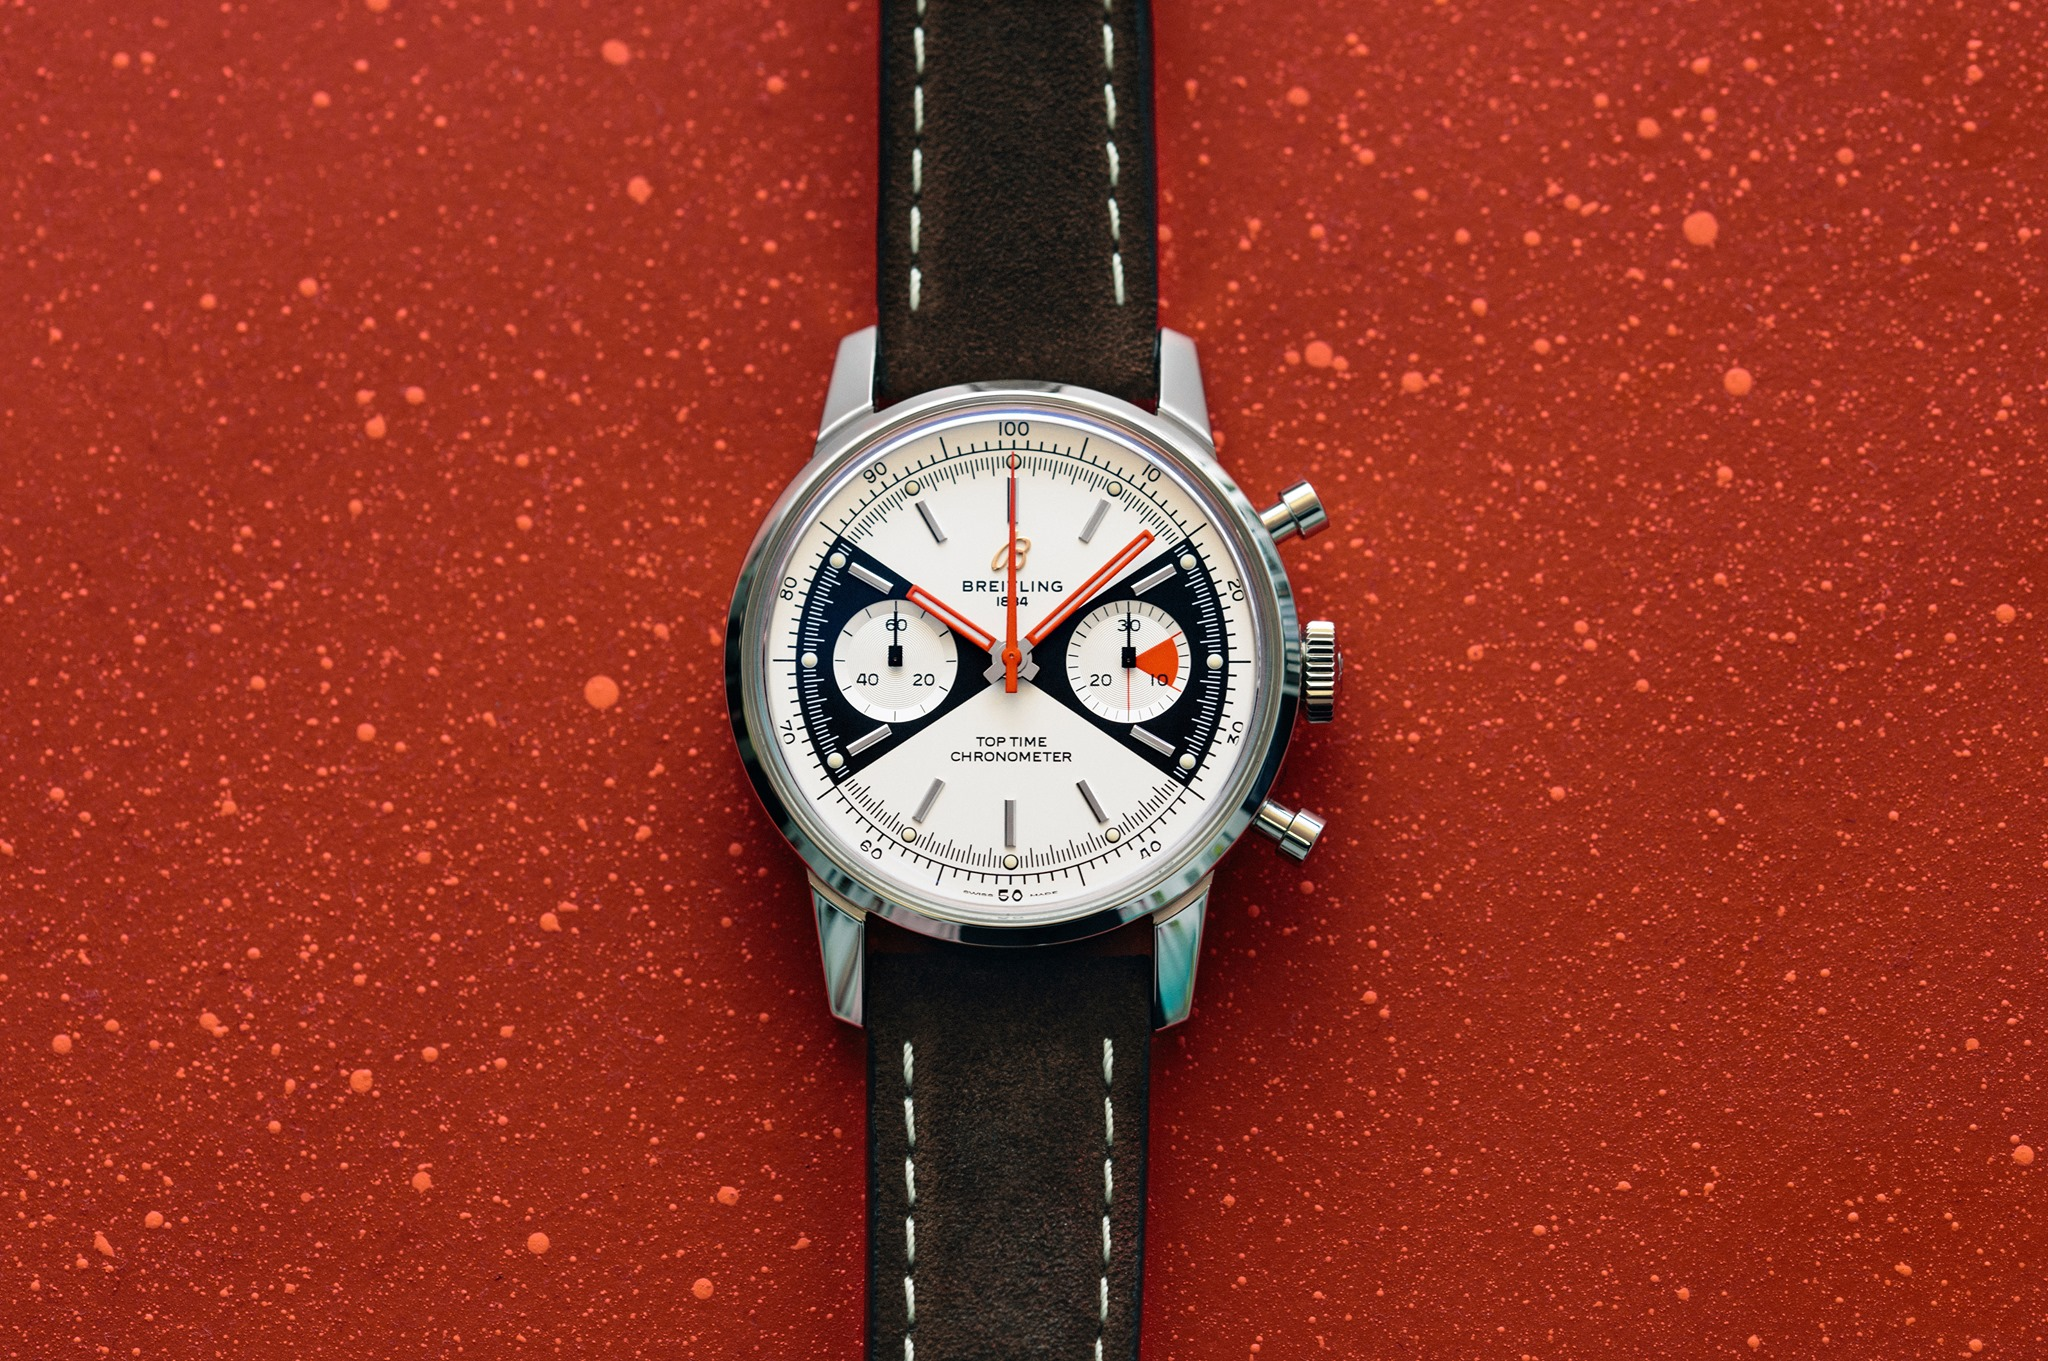 Breitling Top Time Limited Edition-